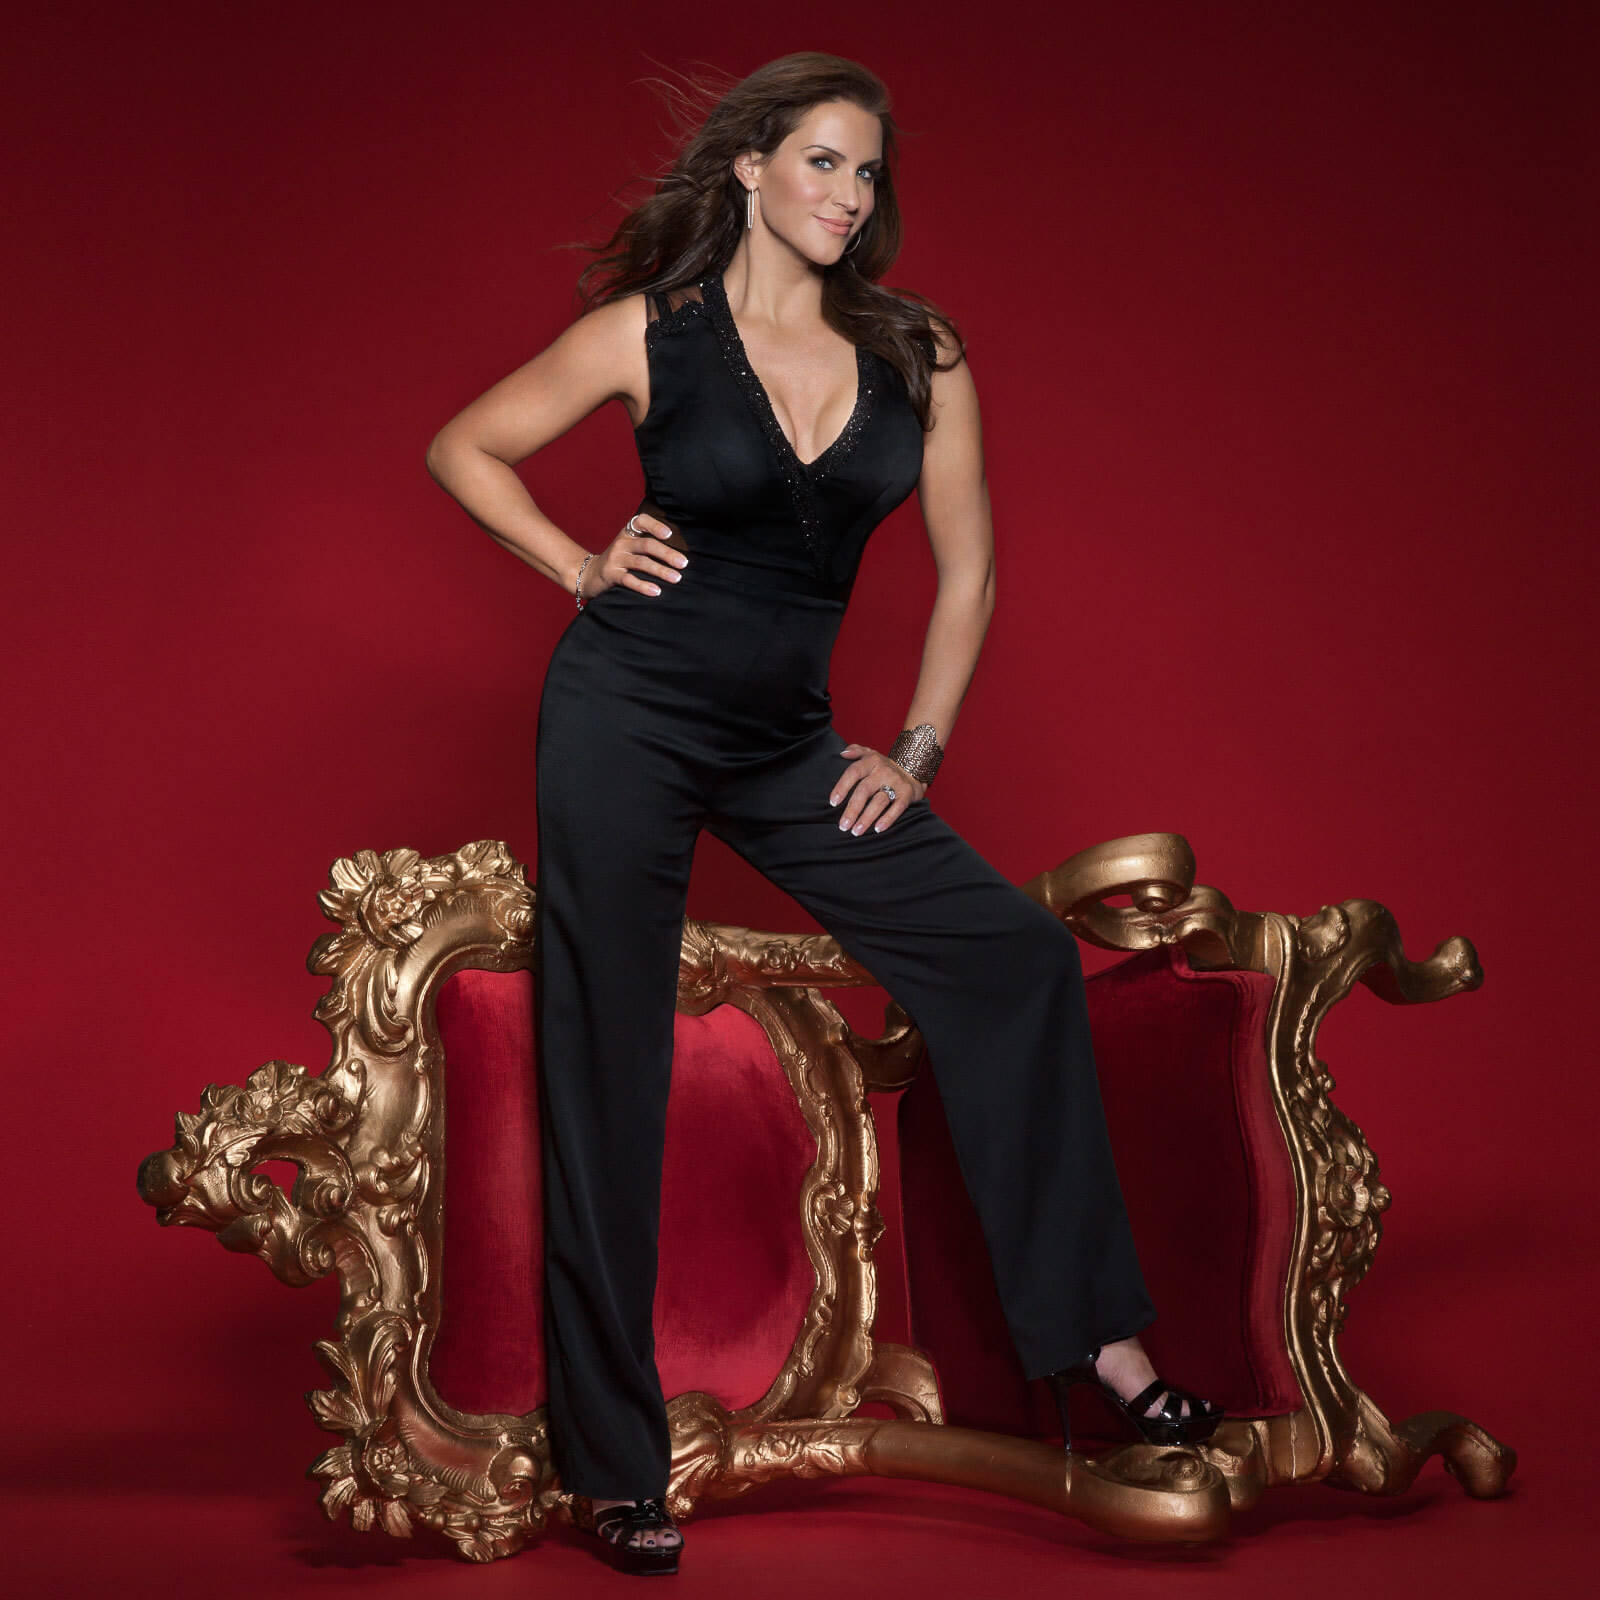 Stephanie mcmahon hot cleavages picture